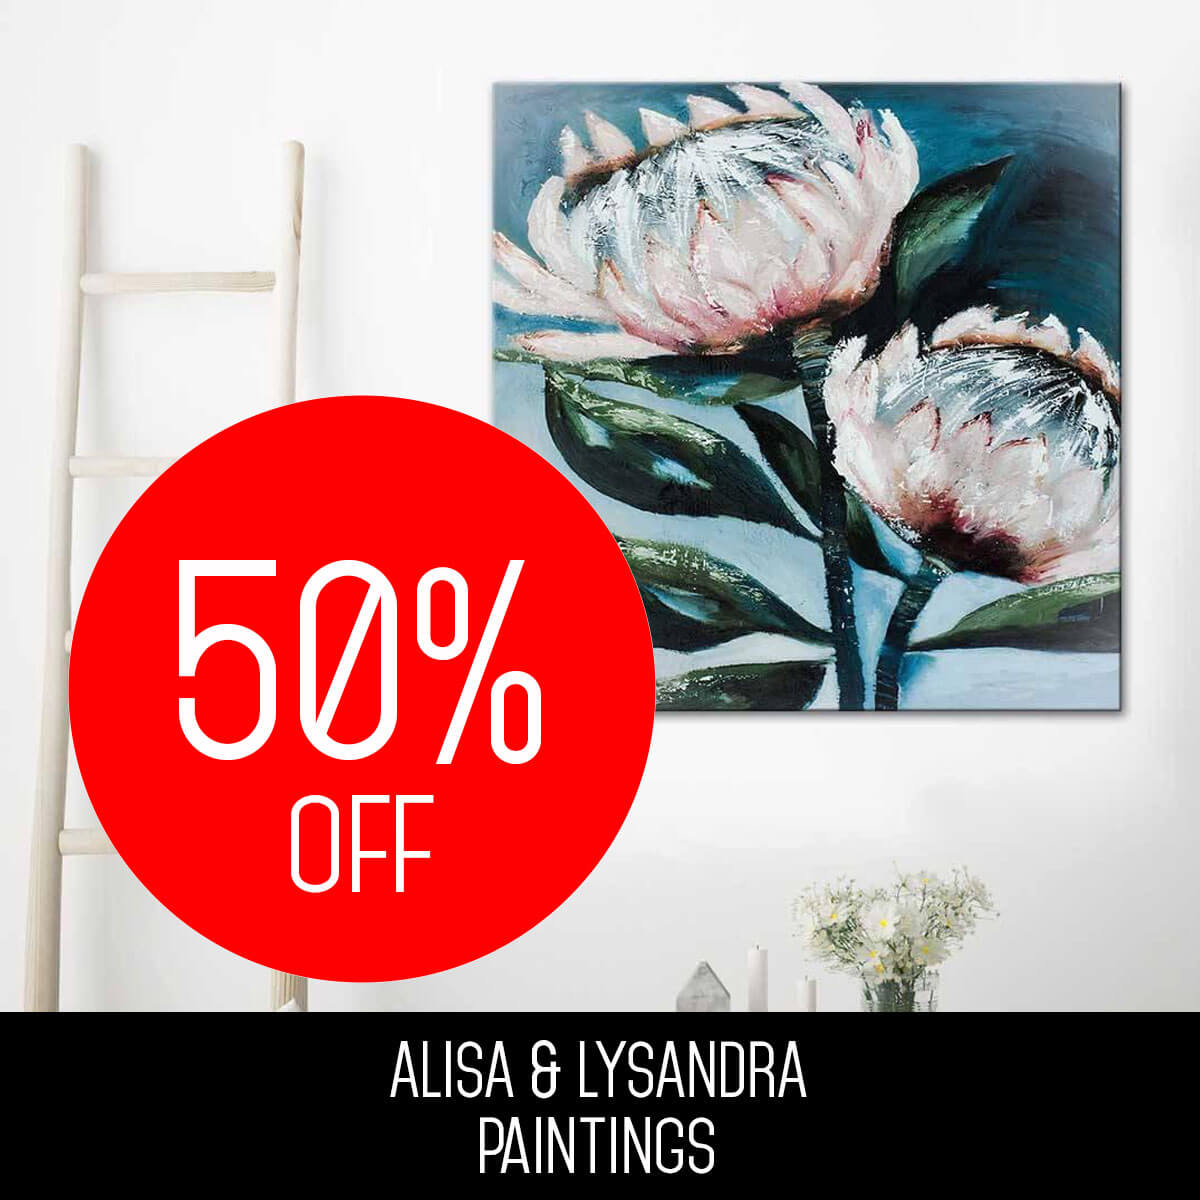 ALISA & LYSANDRA PAINTINGS